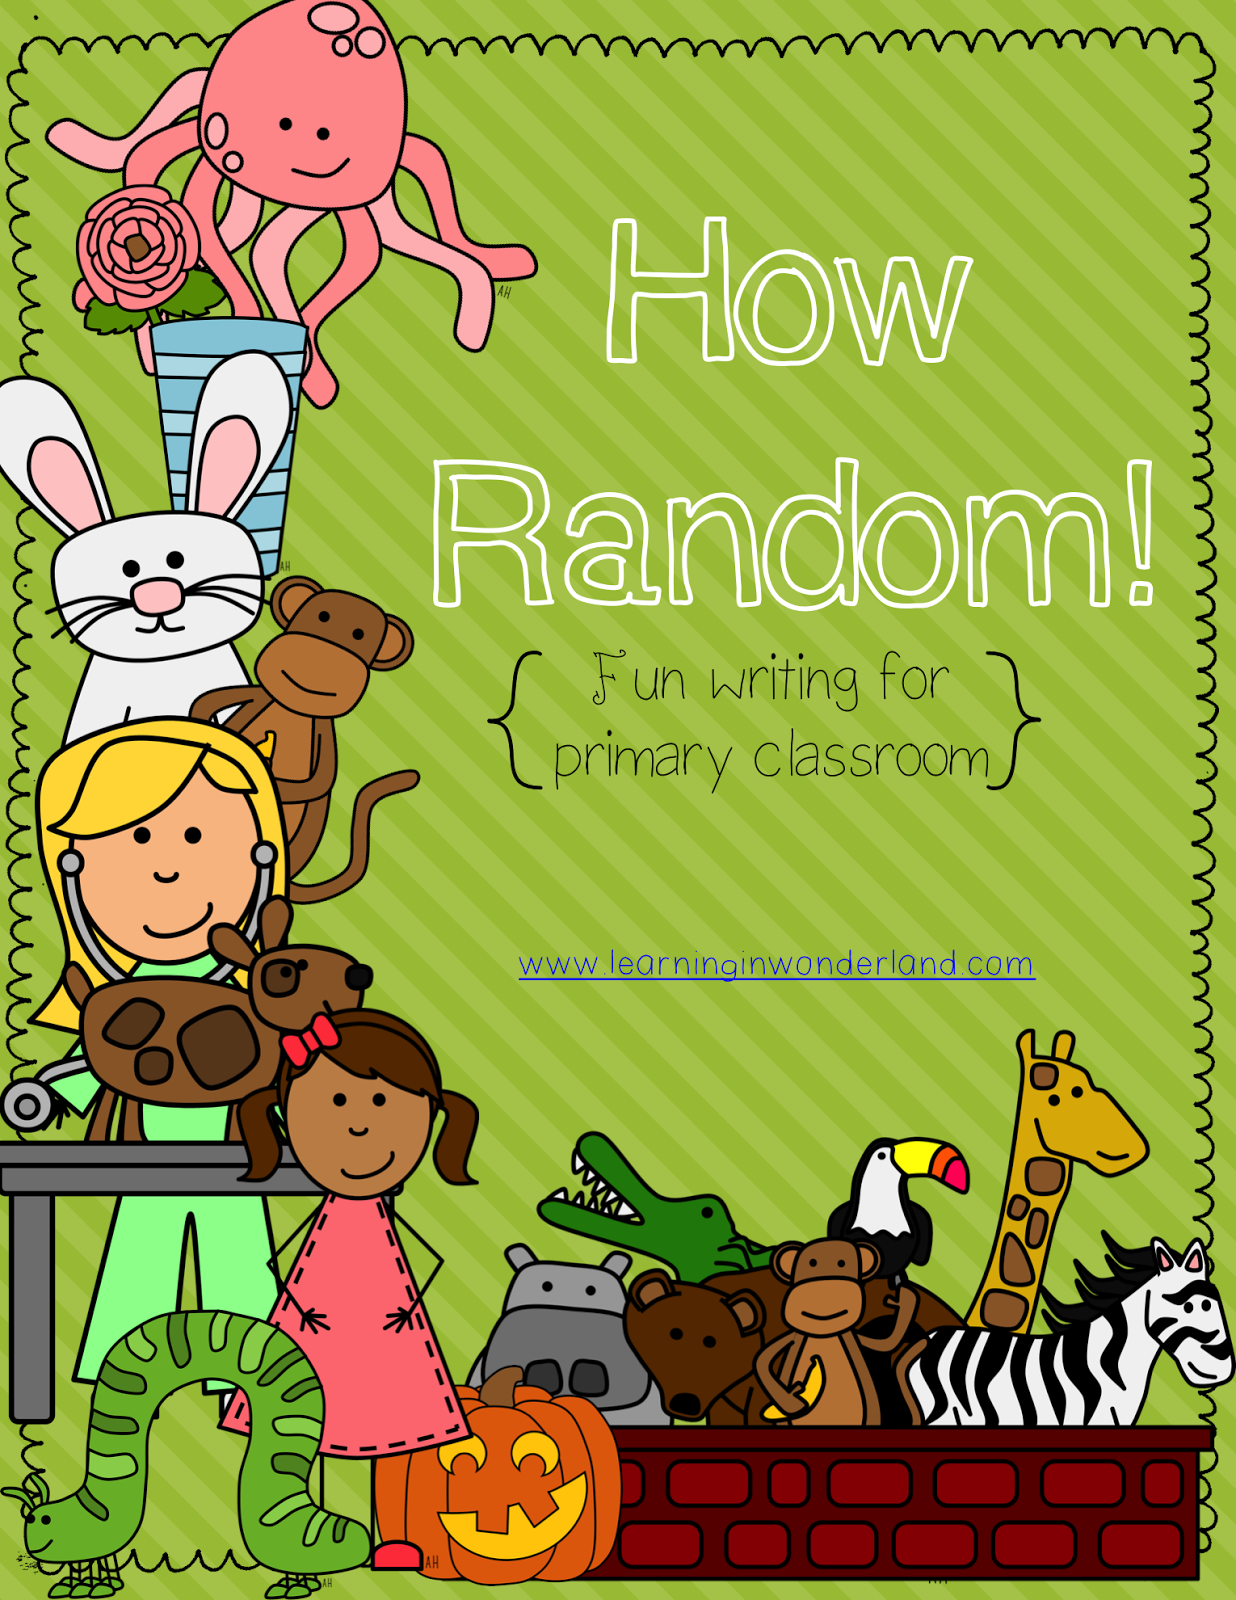 http://www.teacherspayteachers.com/Product/How-Random-Fun-Writing-for-the-Primary-Classroom--924509